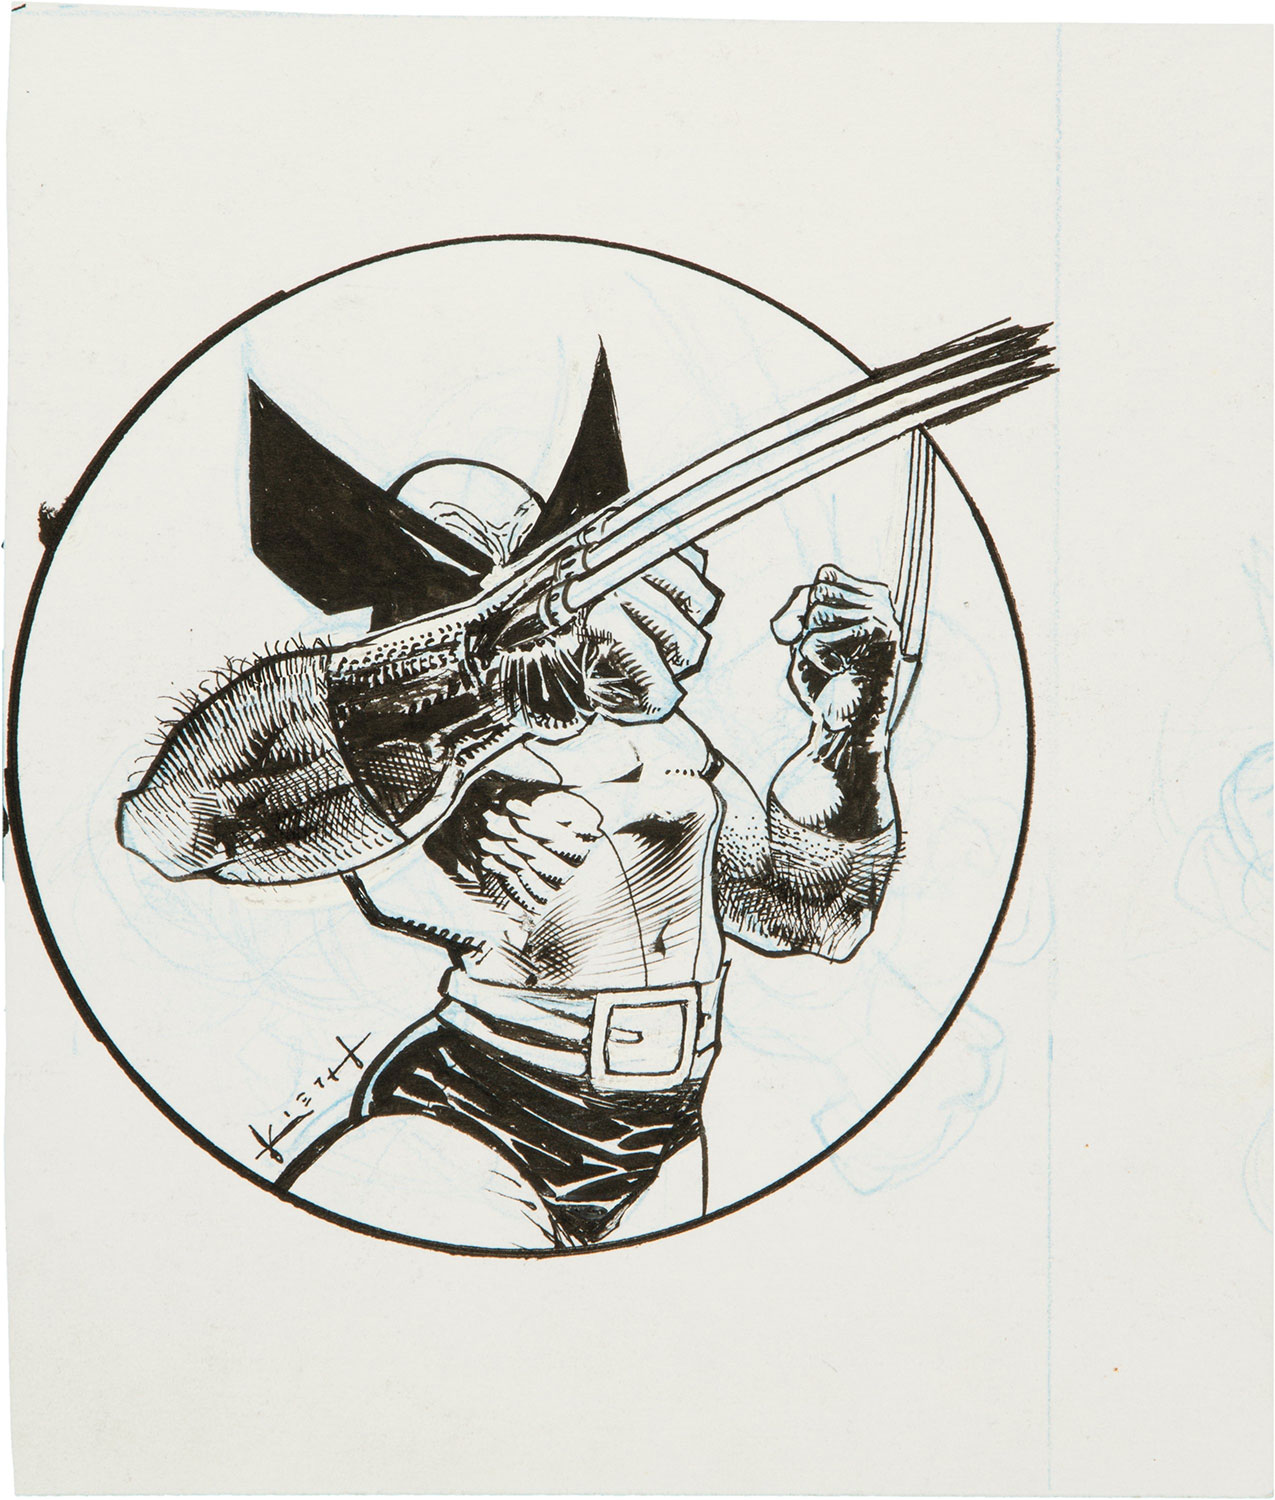 sam_kieth_wolverine